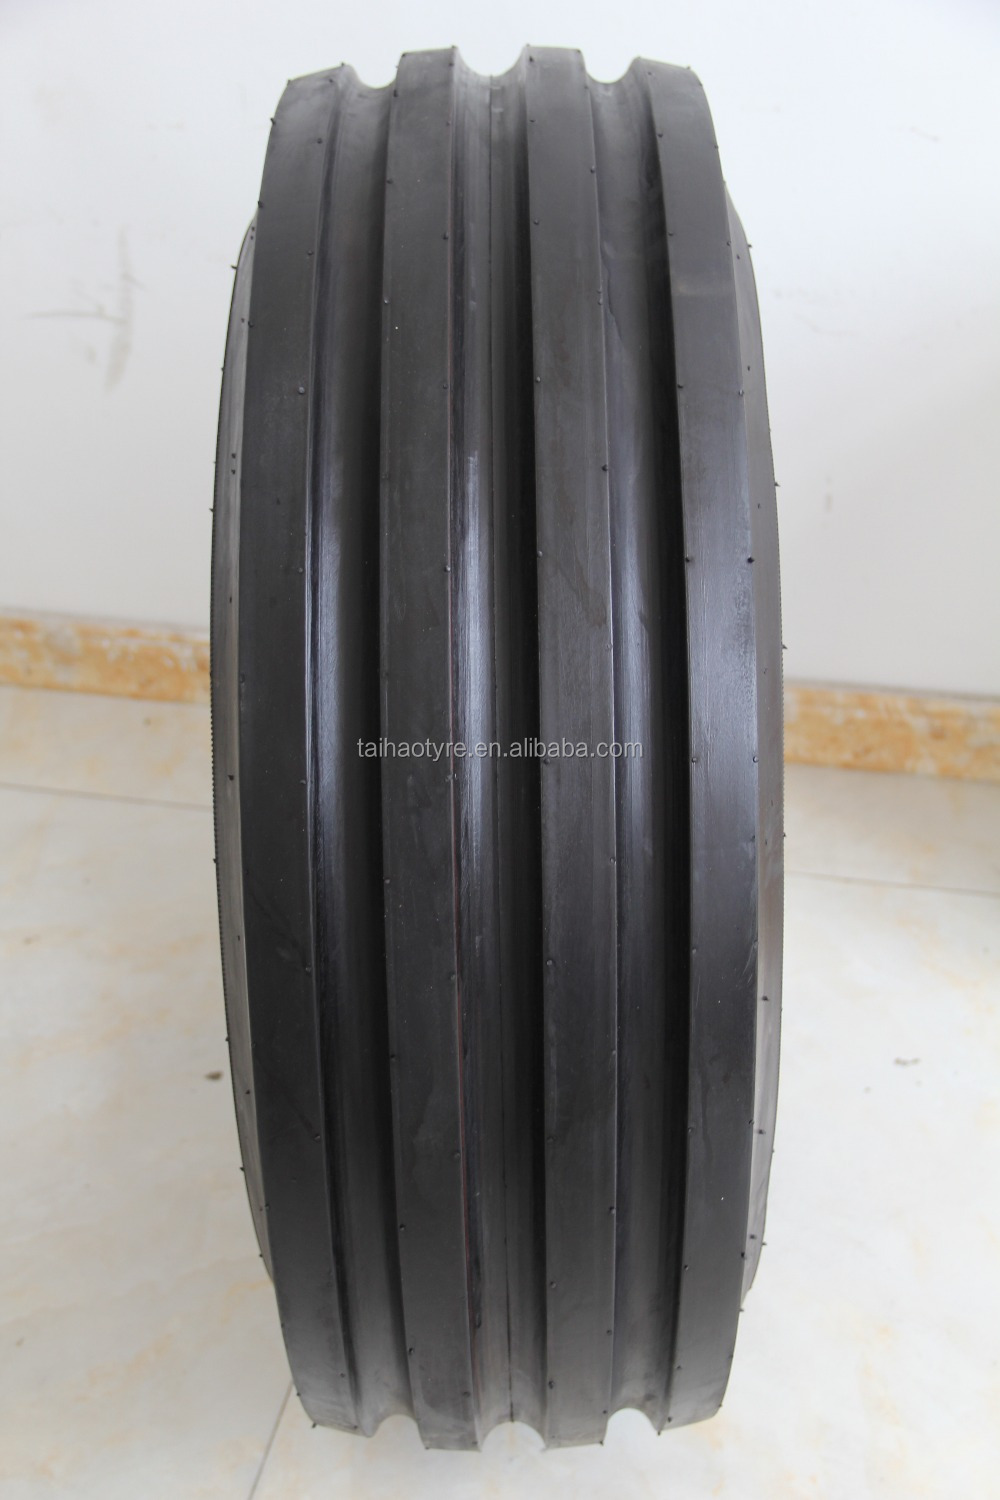 Main Trailer Sales >> F2 Front Tractor Tires Agricultural Tractor Tires 11.00x16